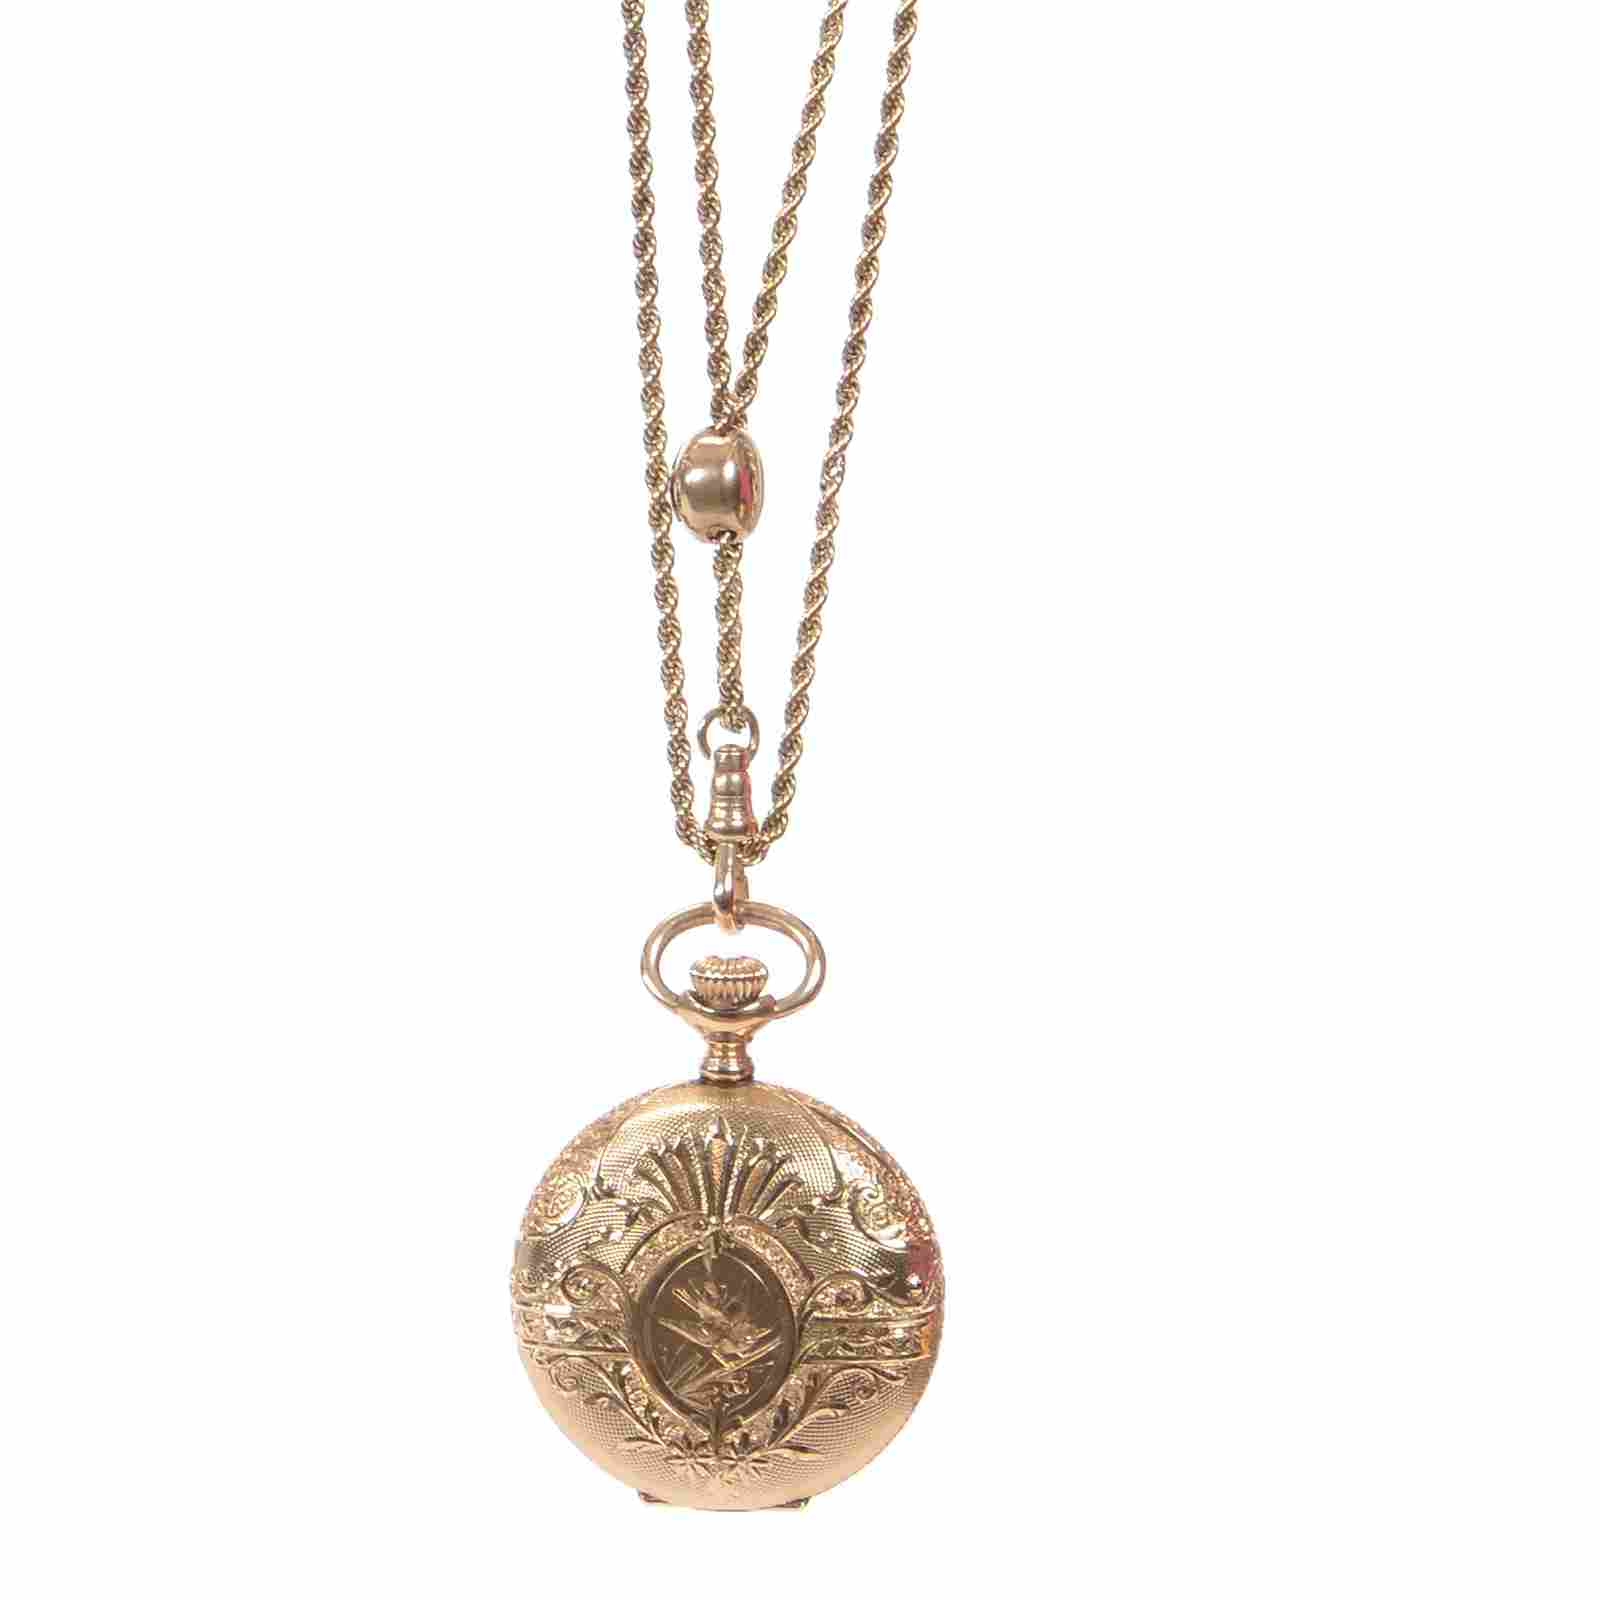 14K Gold Elgin Lady's Pocket Watch with 14K Gold Chain